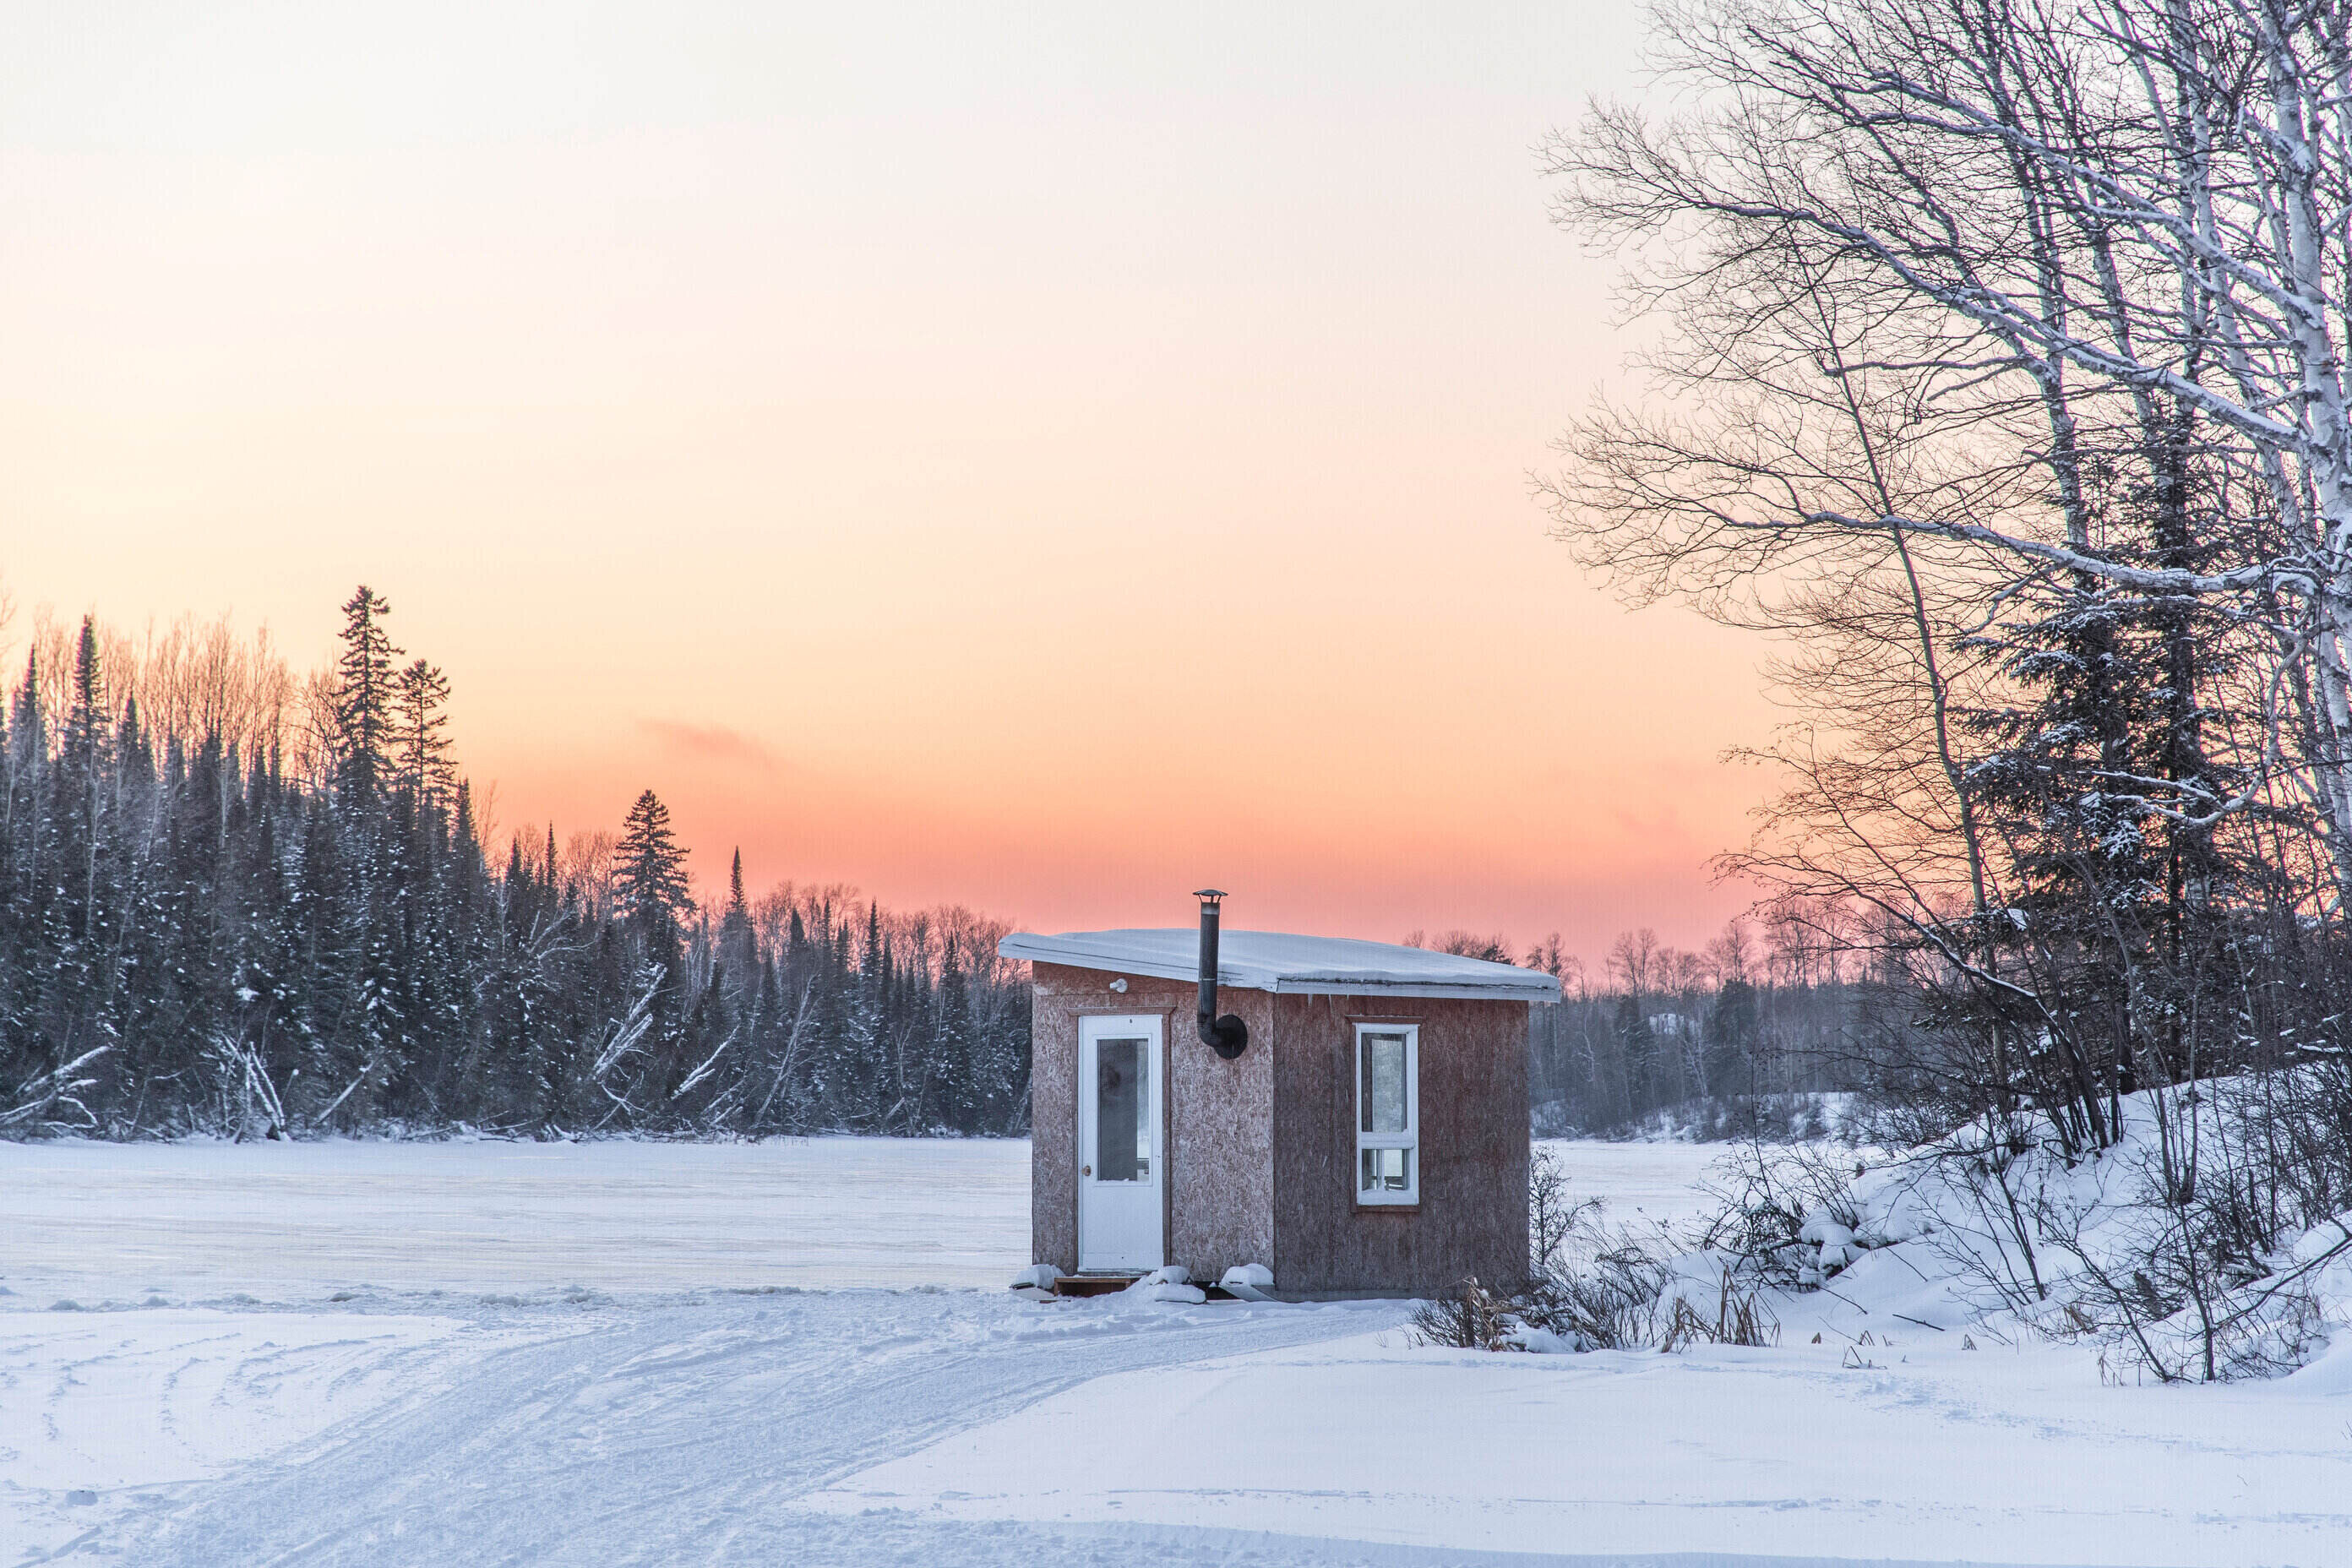 An ice fishing shack on the Lake of the Woods